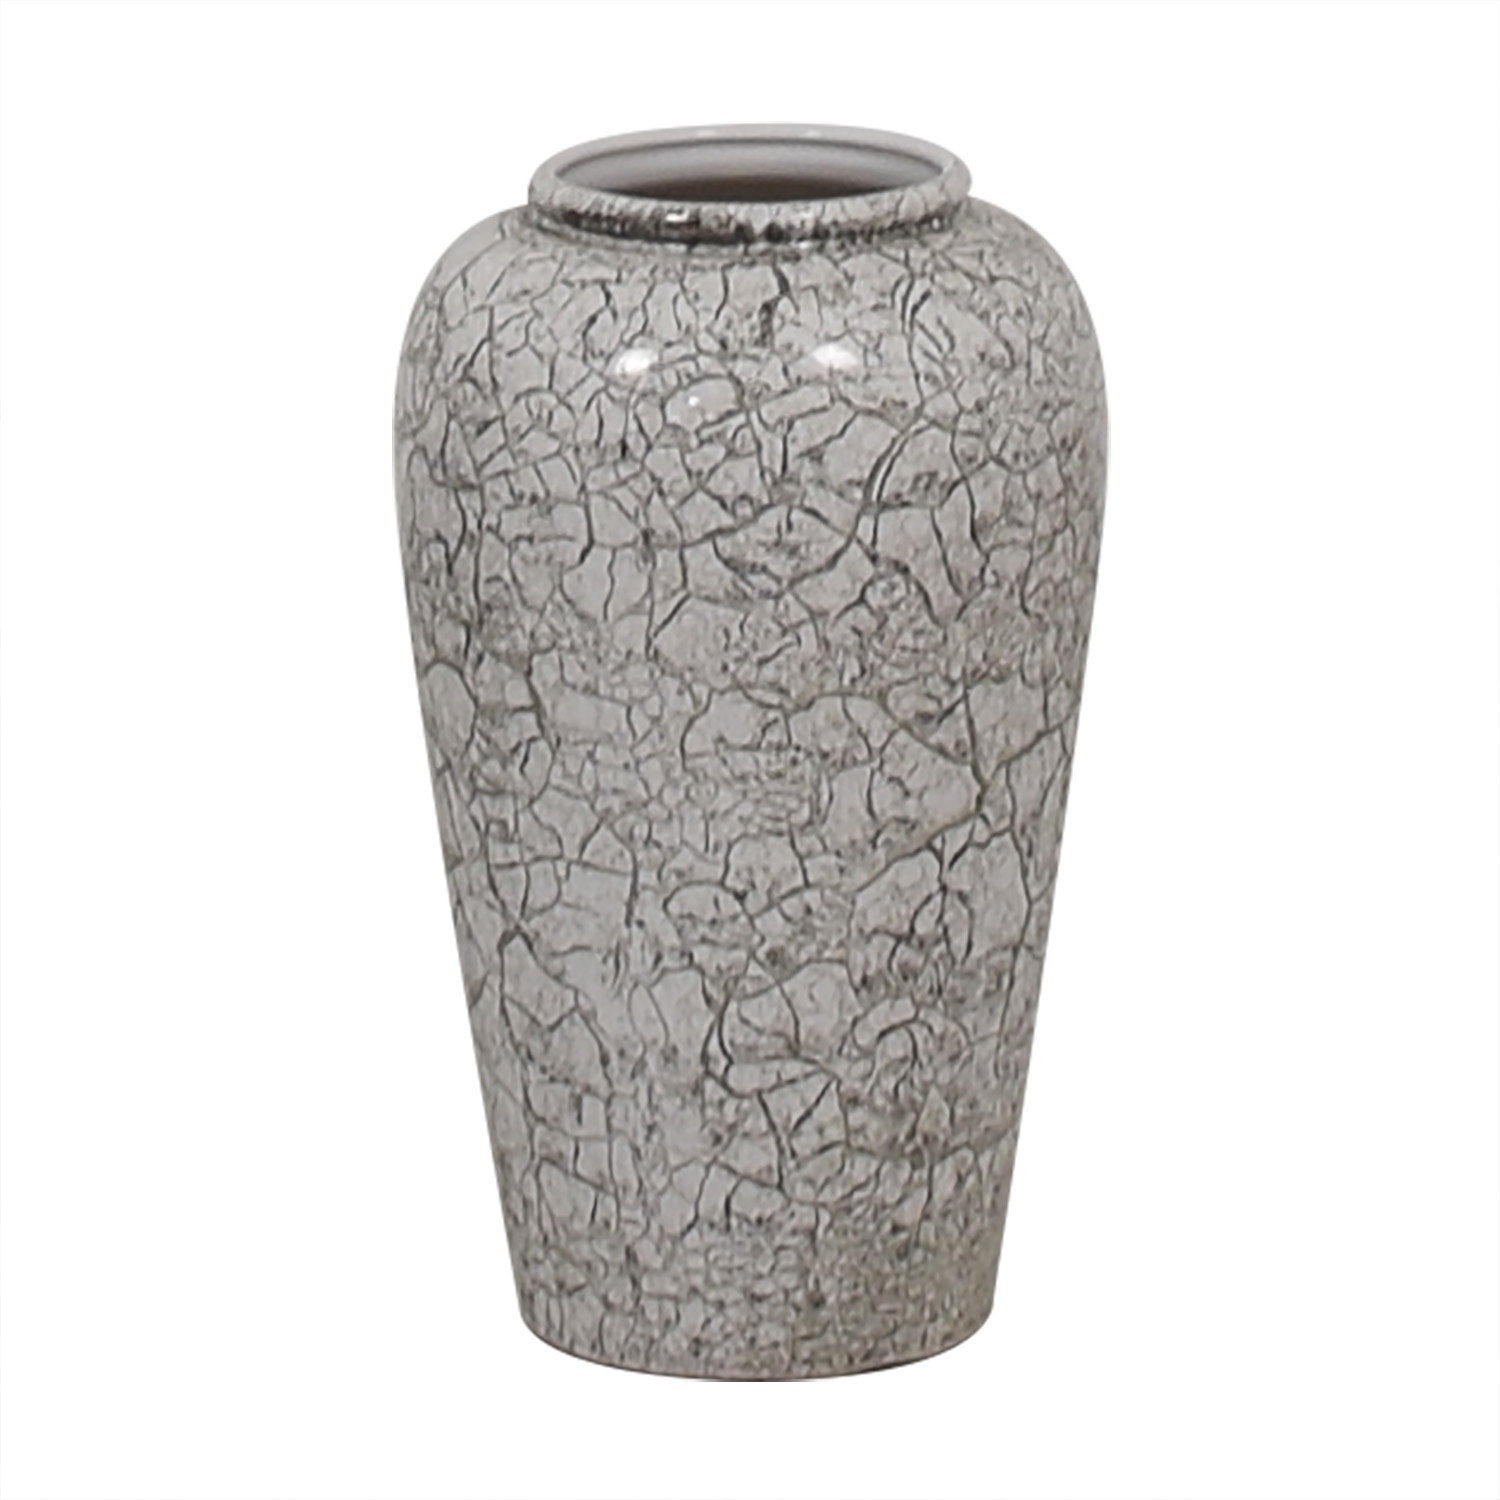 German White and Grey Crackled Effect Vase